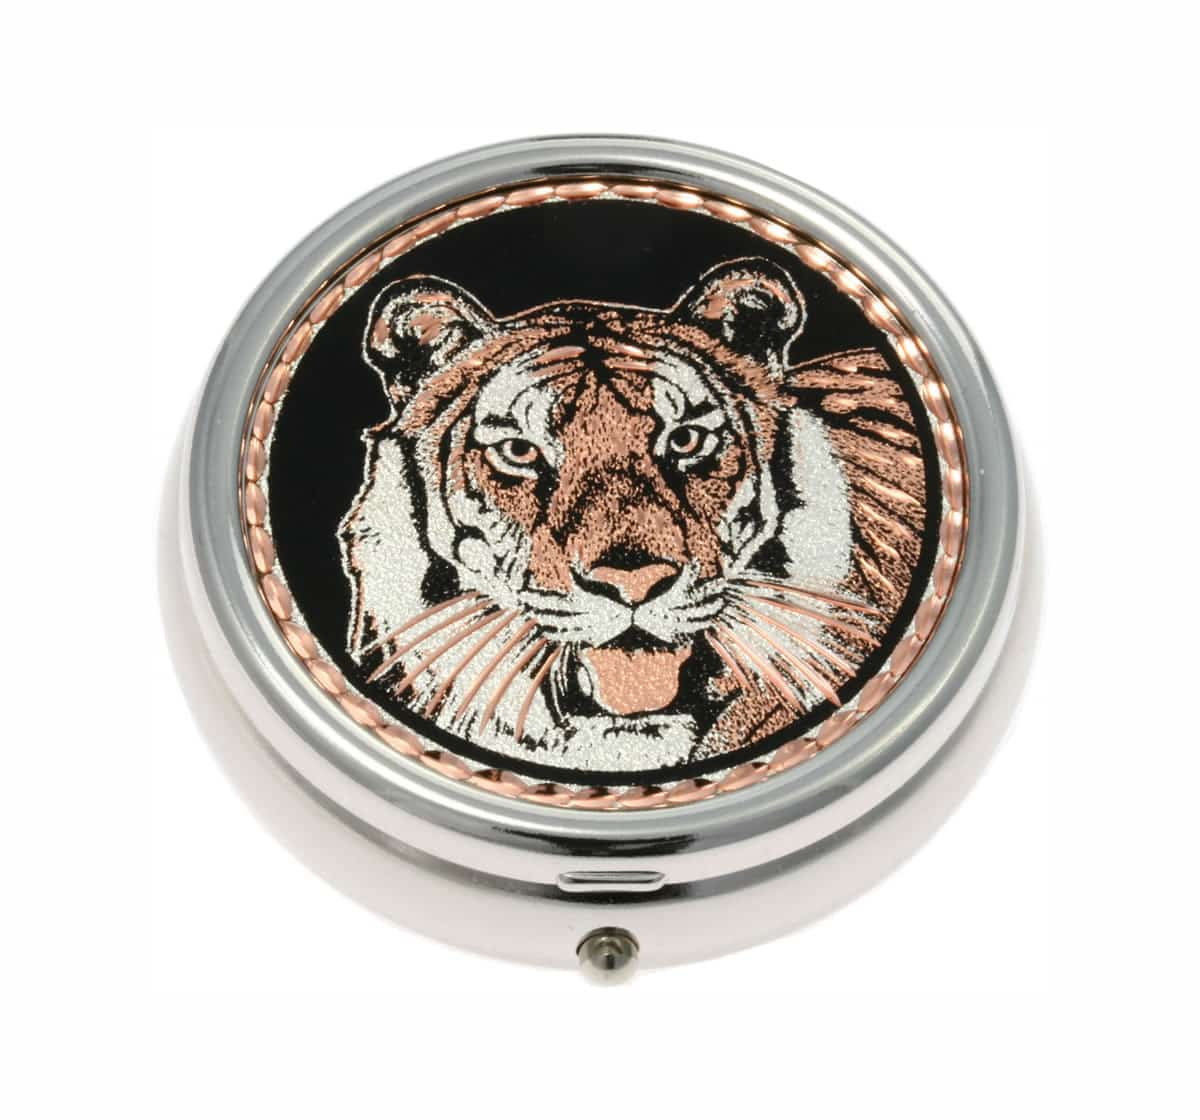 Buy Tiger Pill Boxes, Unique Handmade Gifts for Women